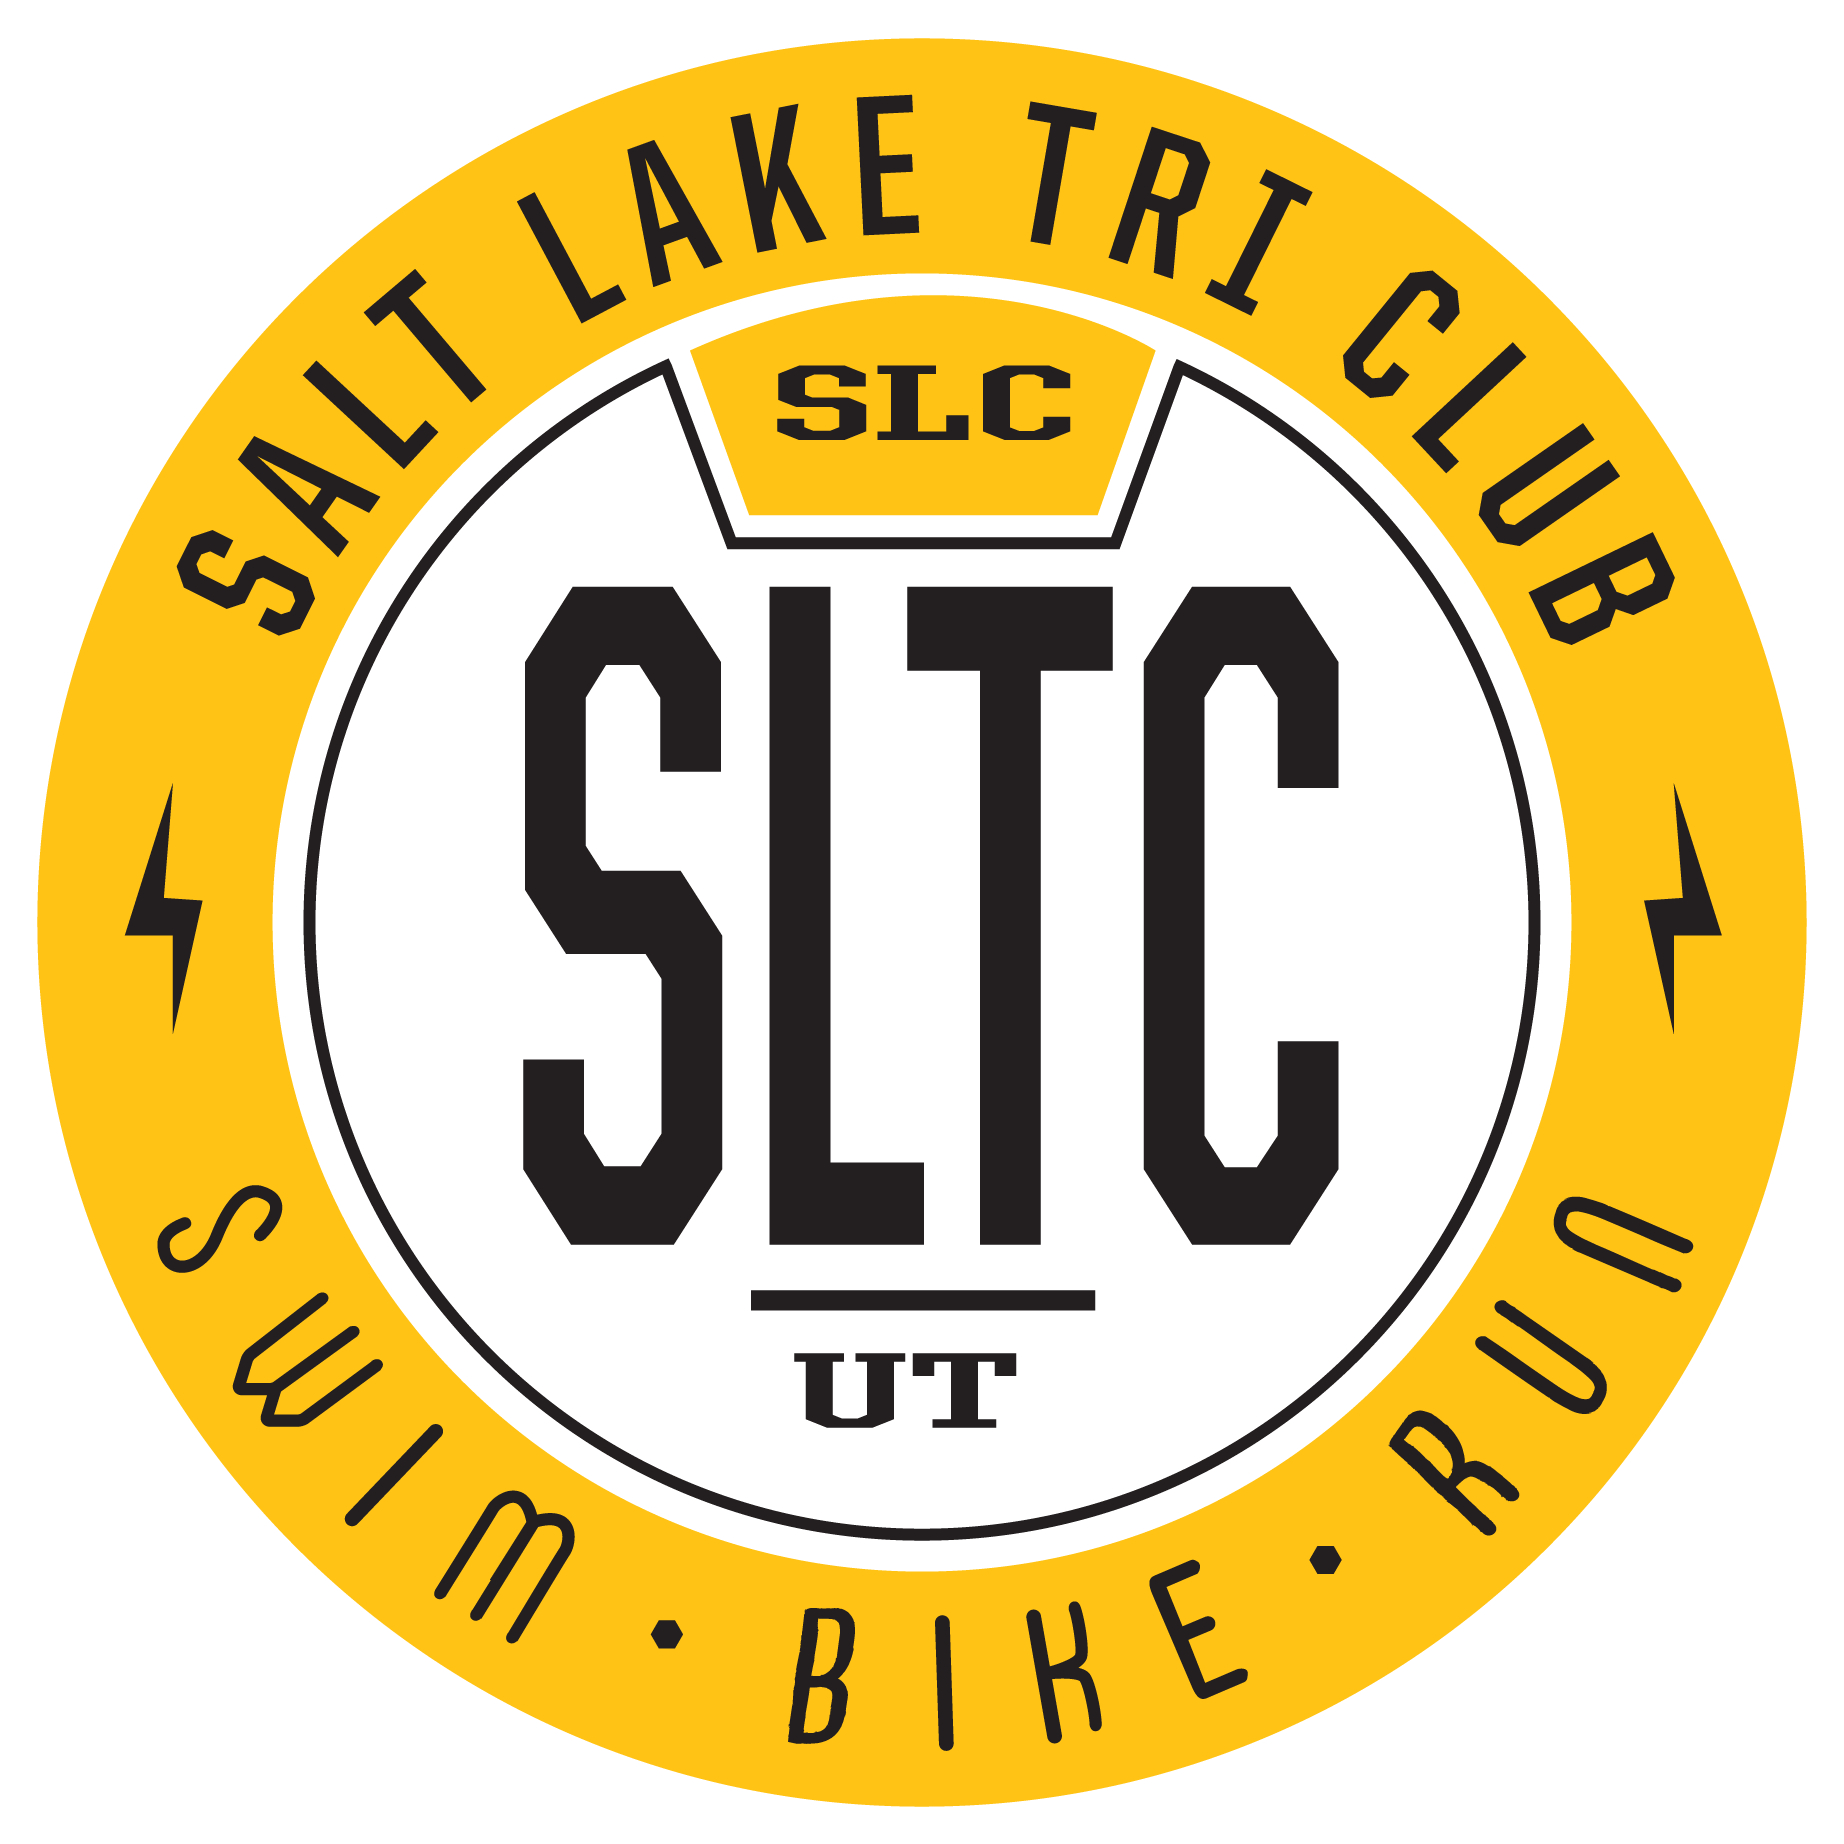 Salt Lake Tri Club logo